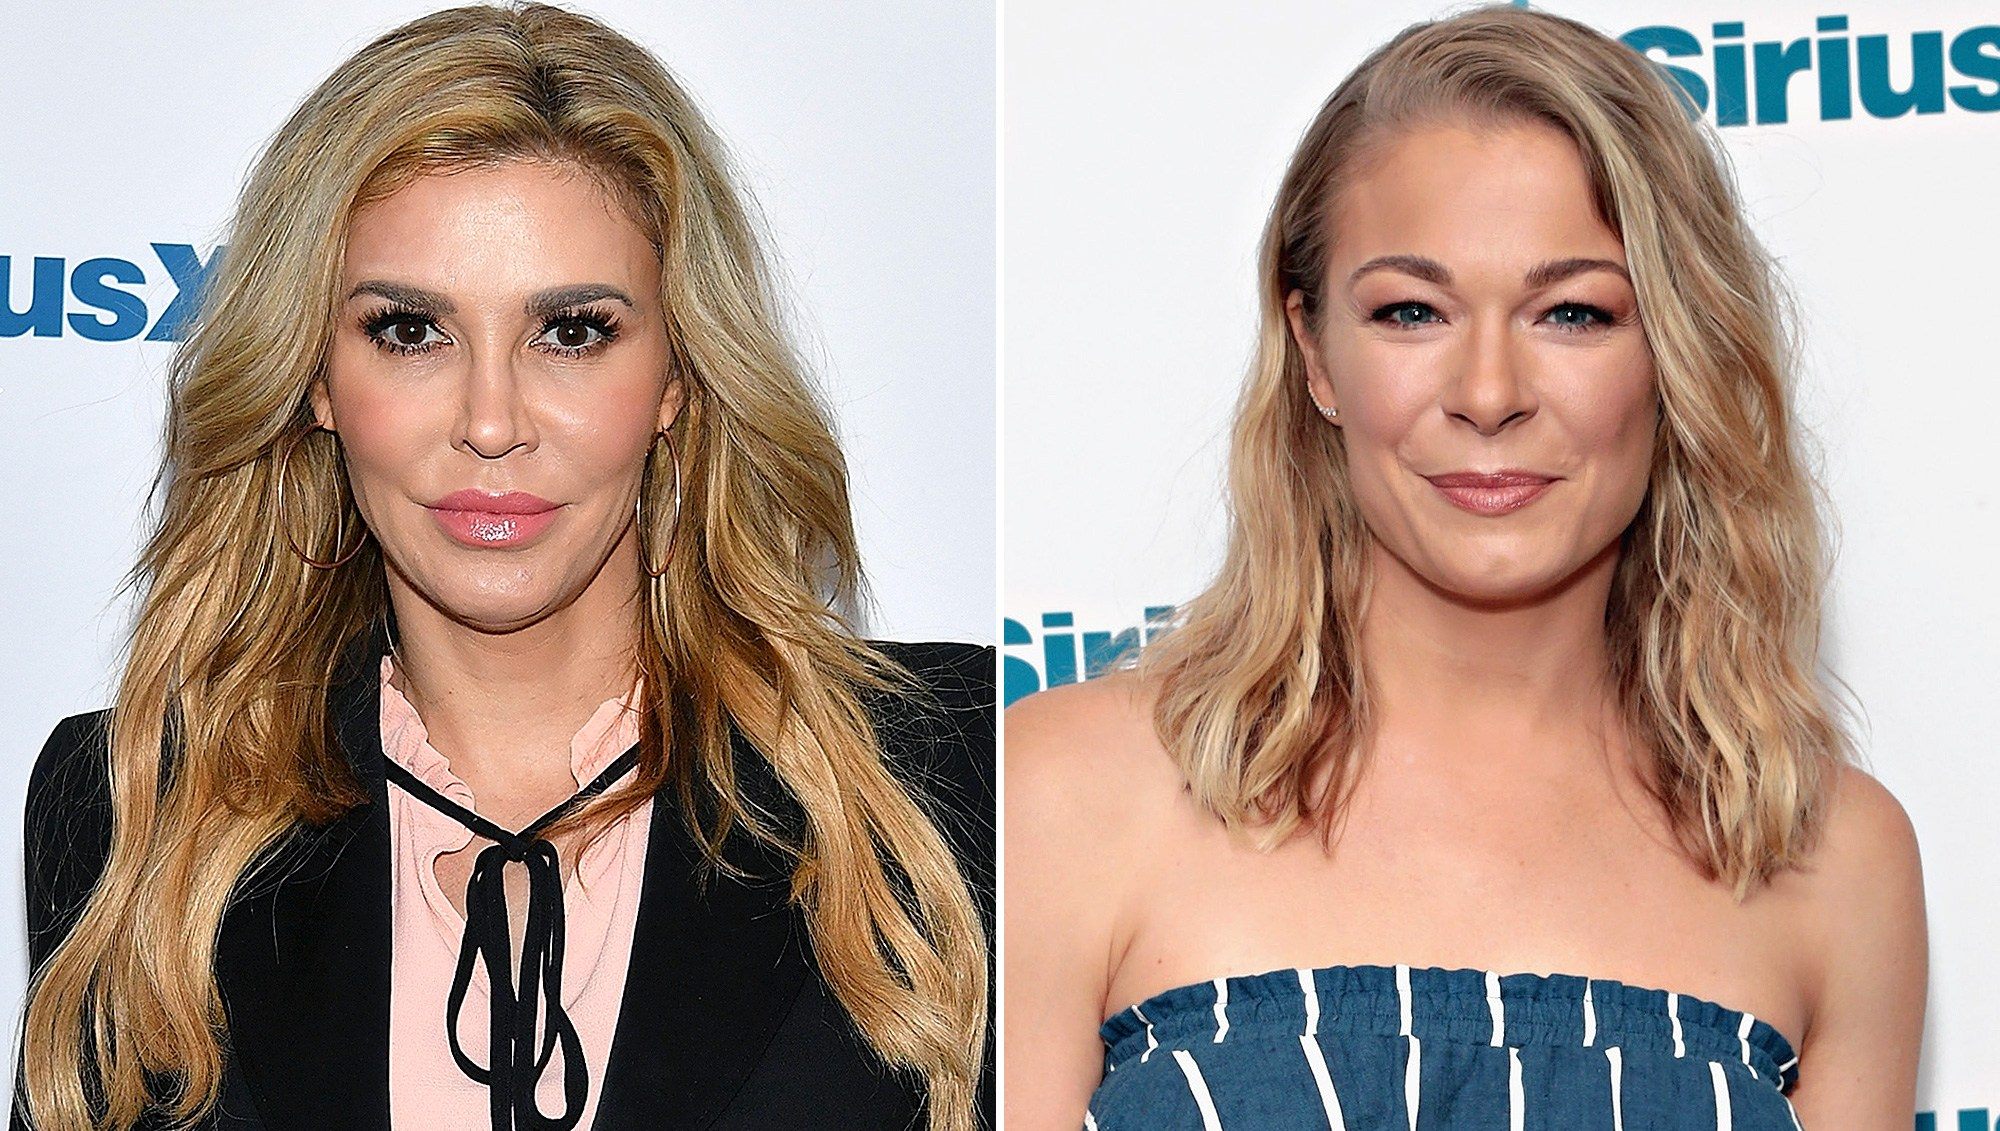 LeAnn Rimes, Brandi Glanville, Pose Together, Eddie Cibrian, Jake, Birthday